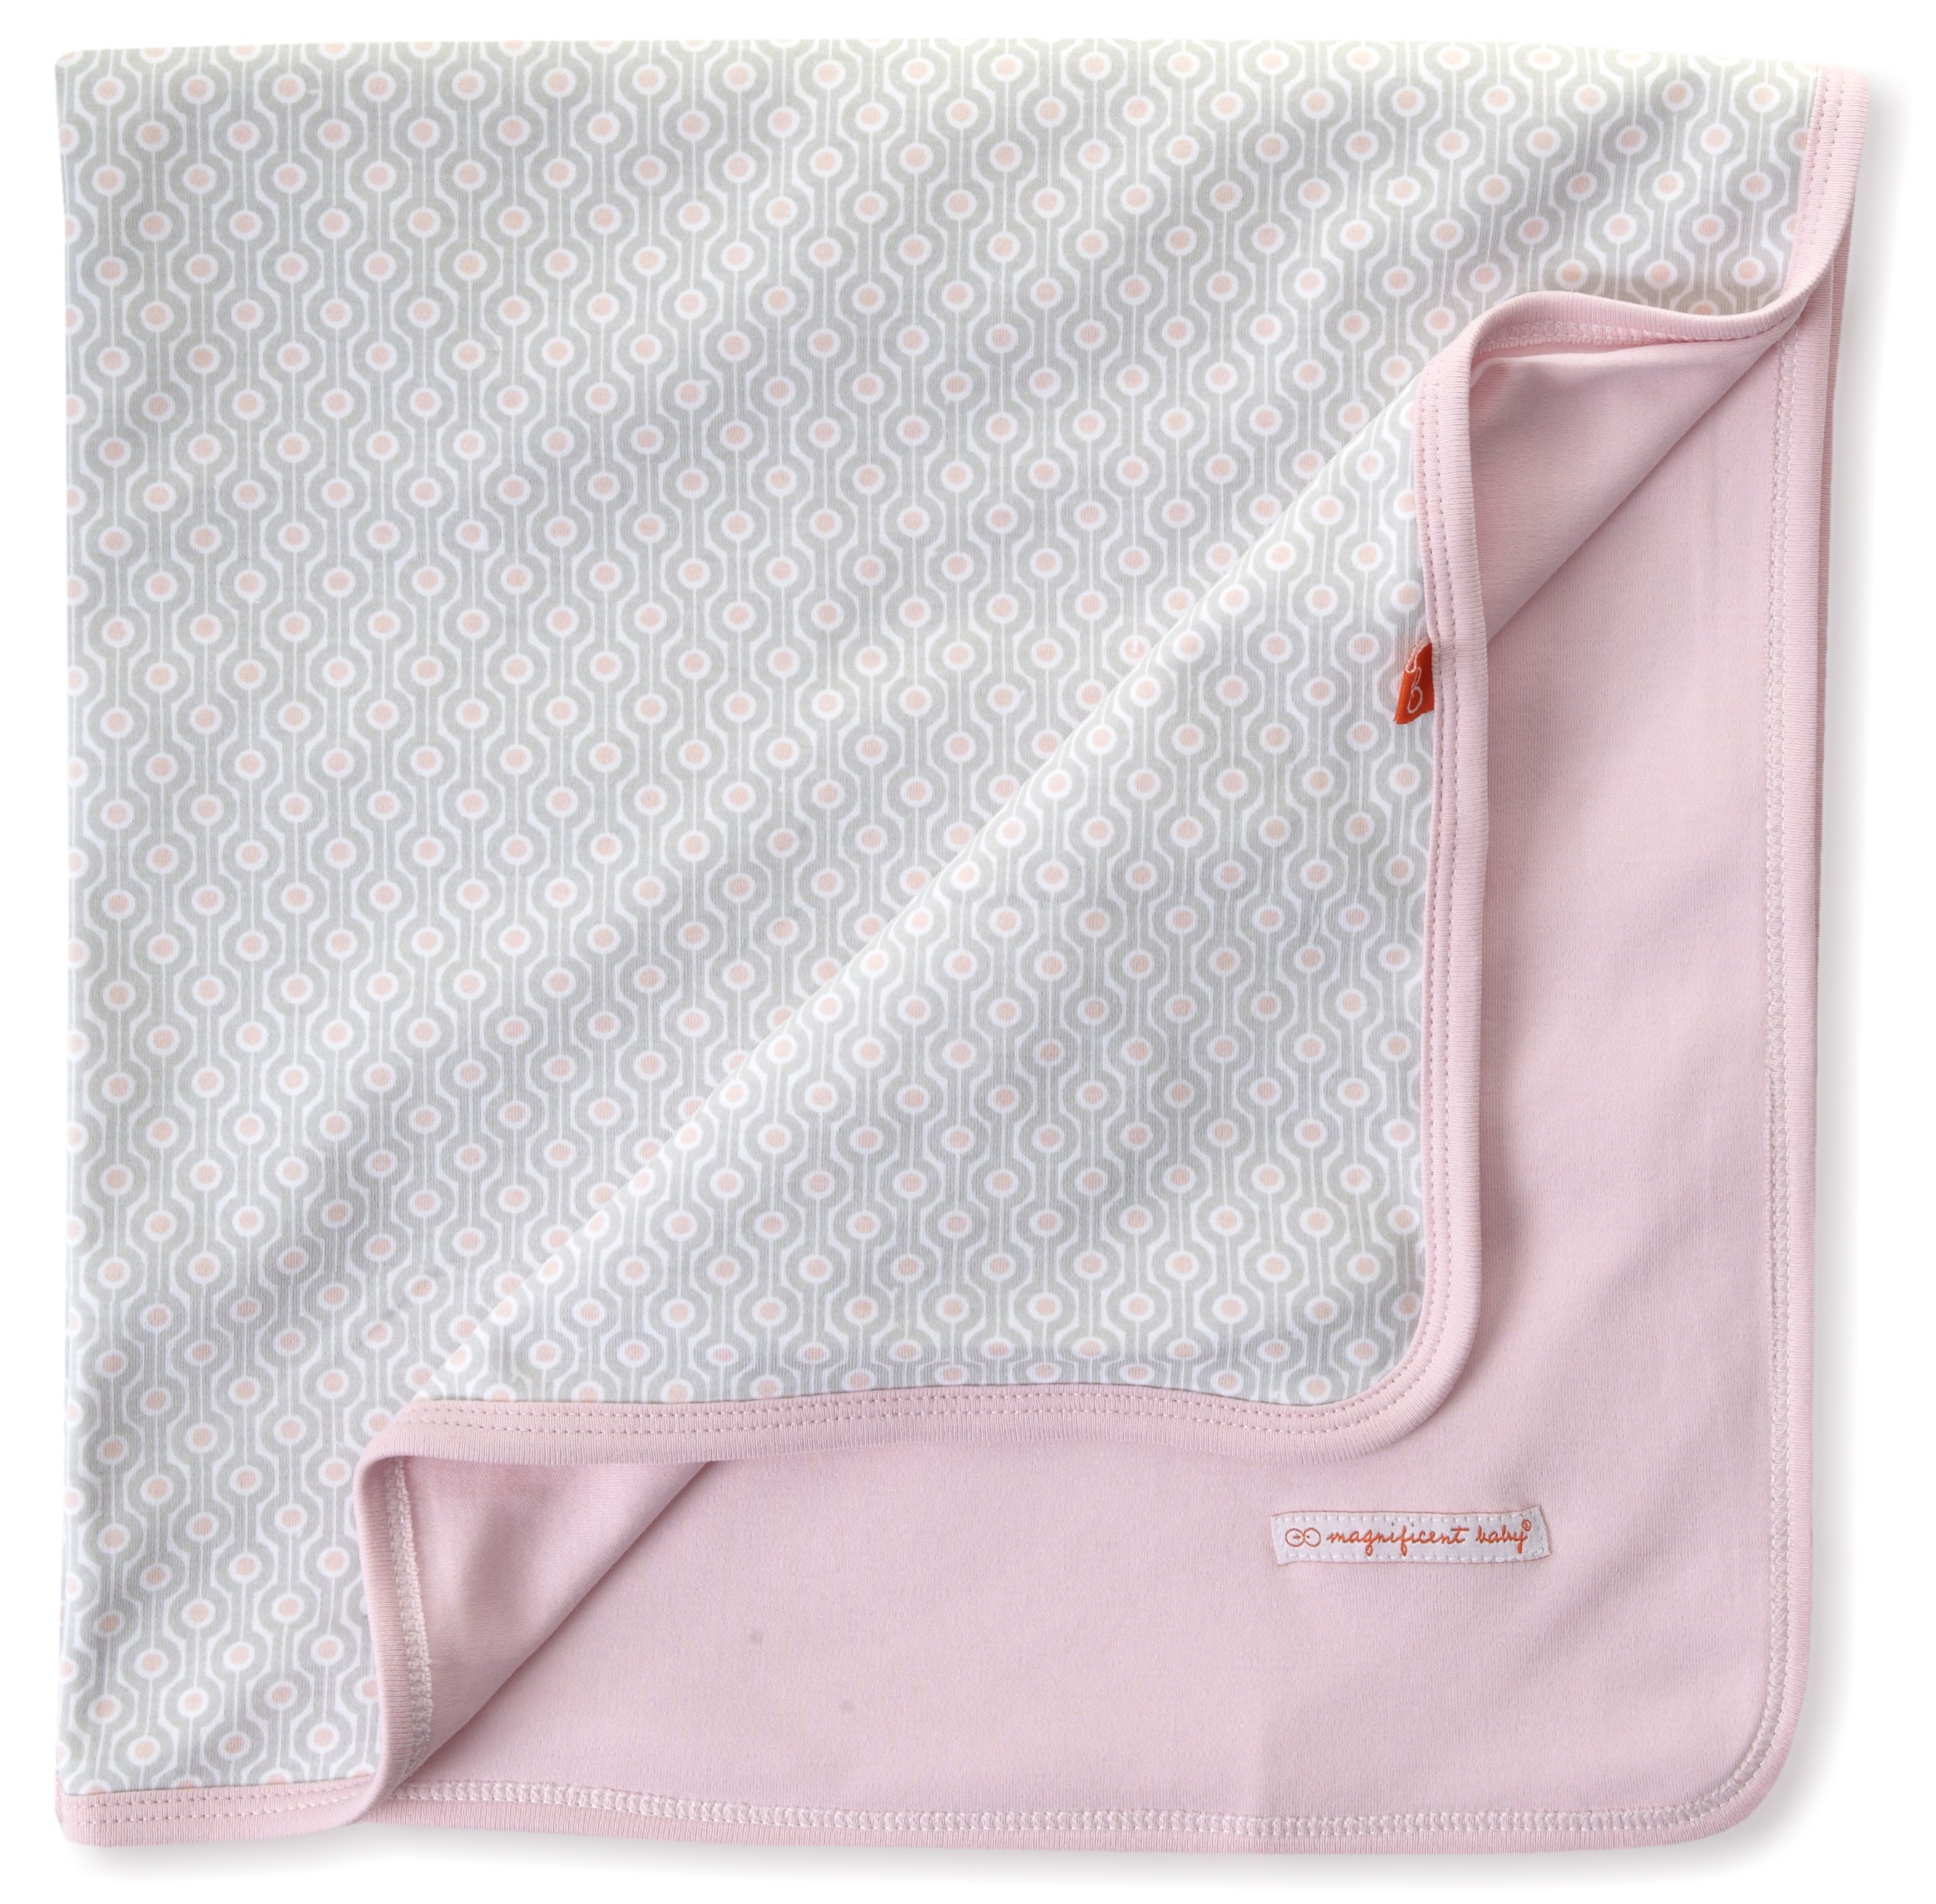 Magnificent Baby-Girls Newborn Reversible Blanket, Pink Mod Dots, One Size by Magnificent Baby